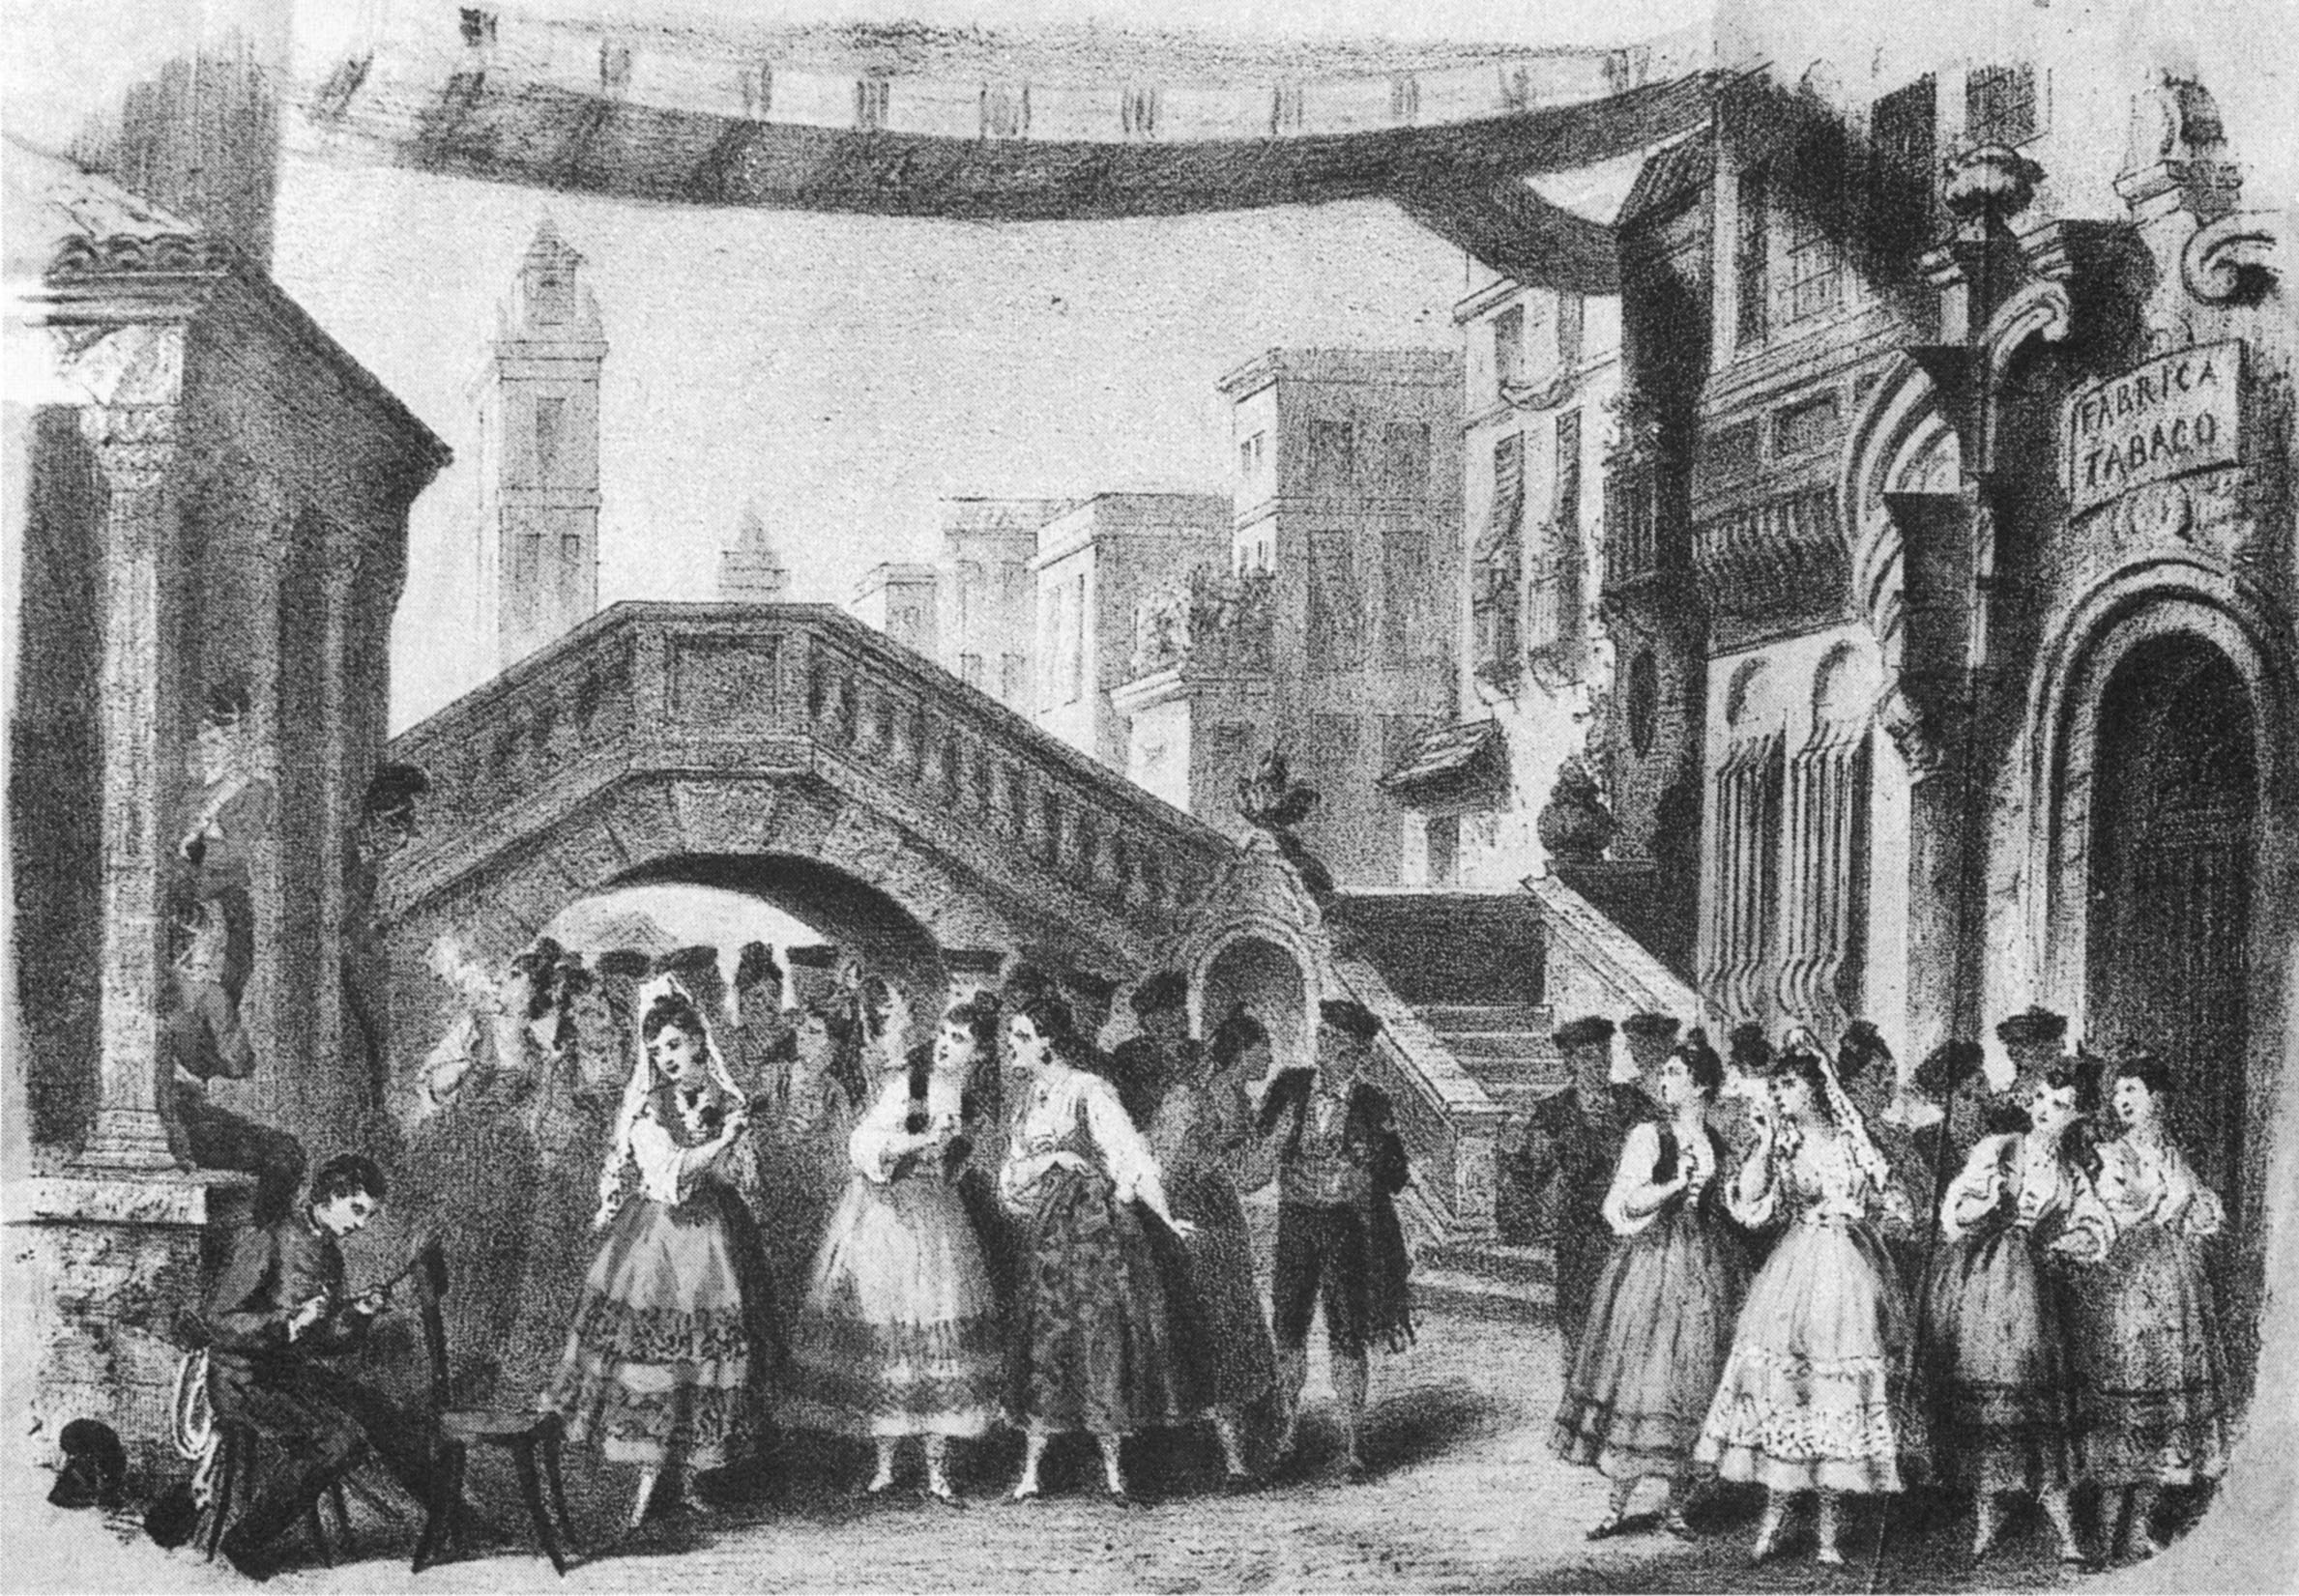 Lithograph of act 1 in the premiere performance, by Pierre-Auguste Lamy, 1875